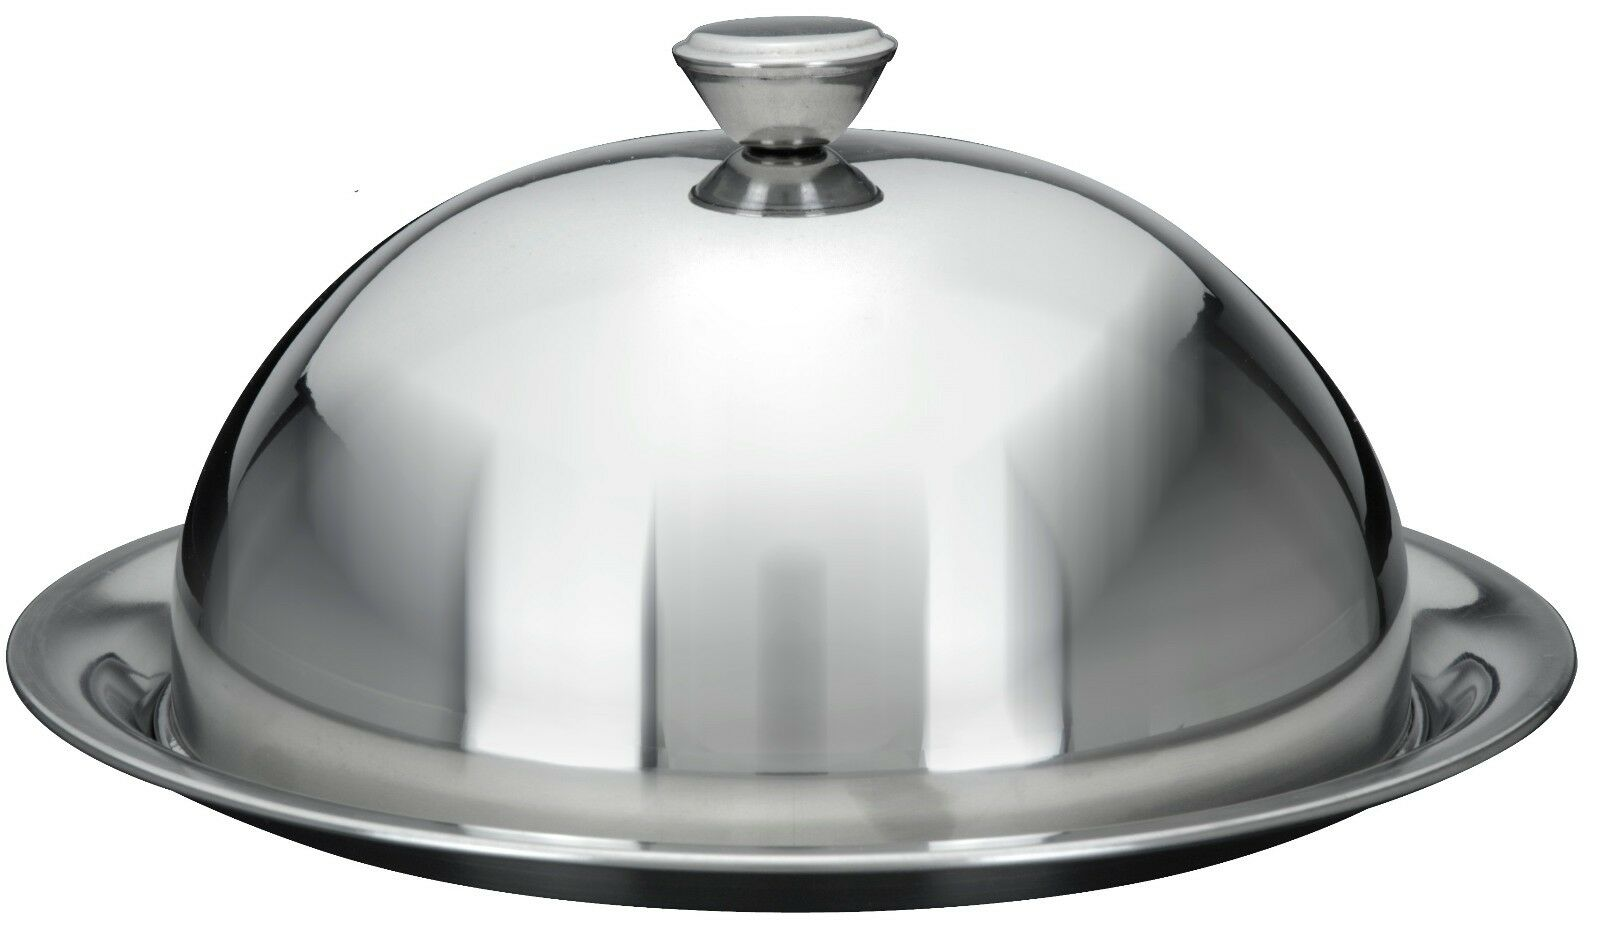 Stainless Steel Food Cover Cloche Plate Platter with Domed Cover Serving Dish